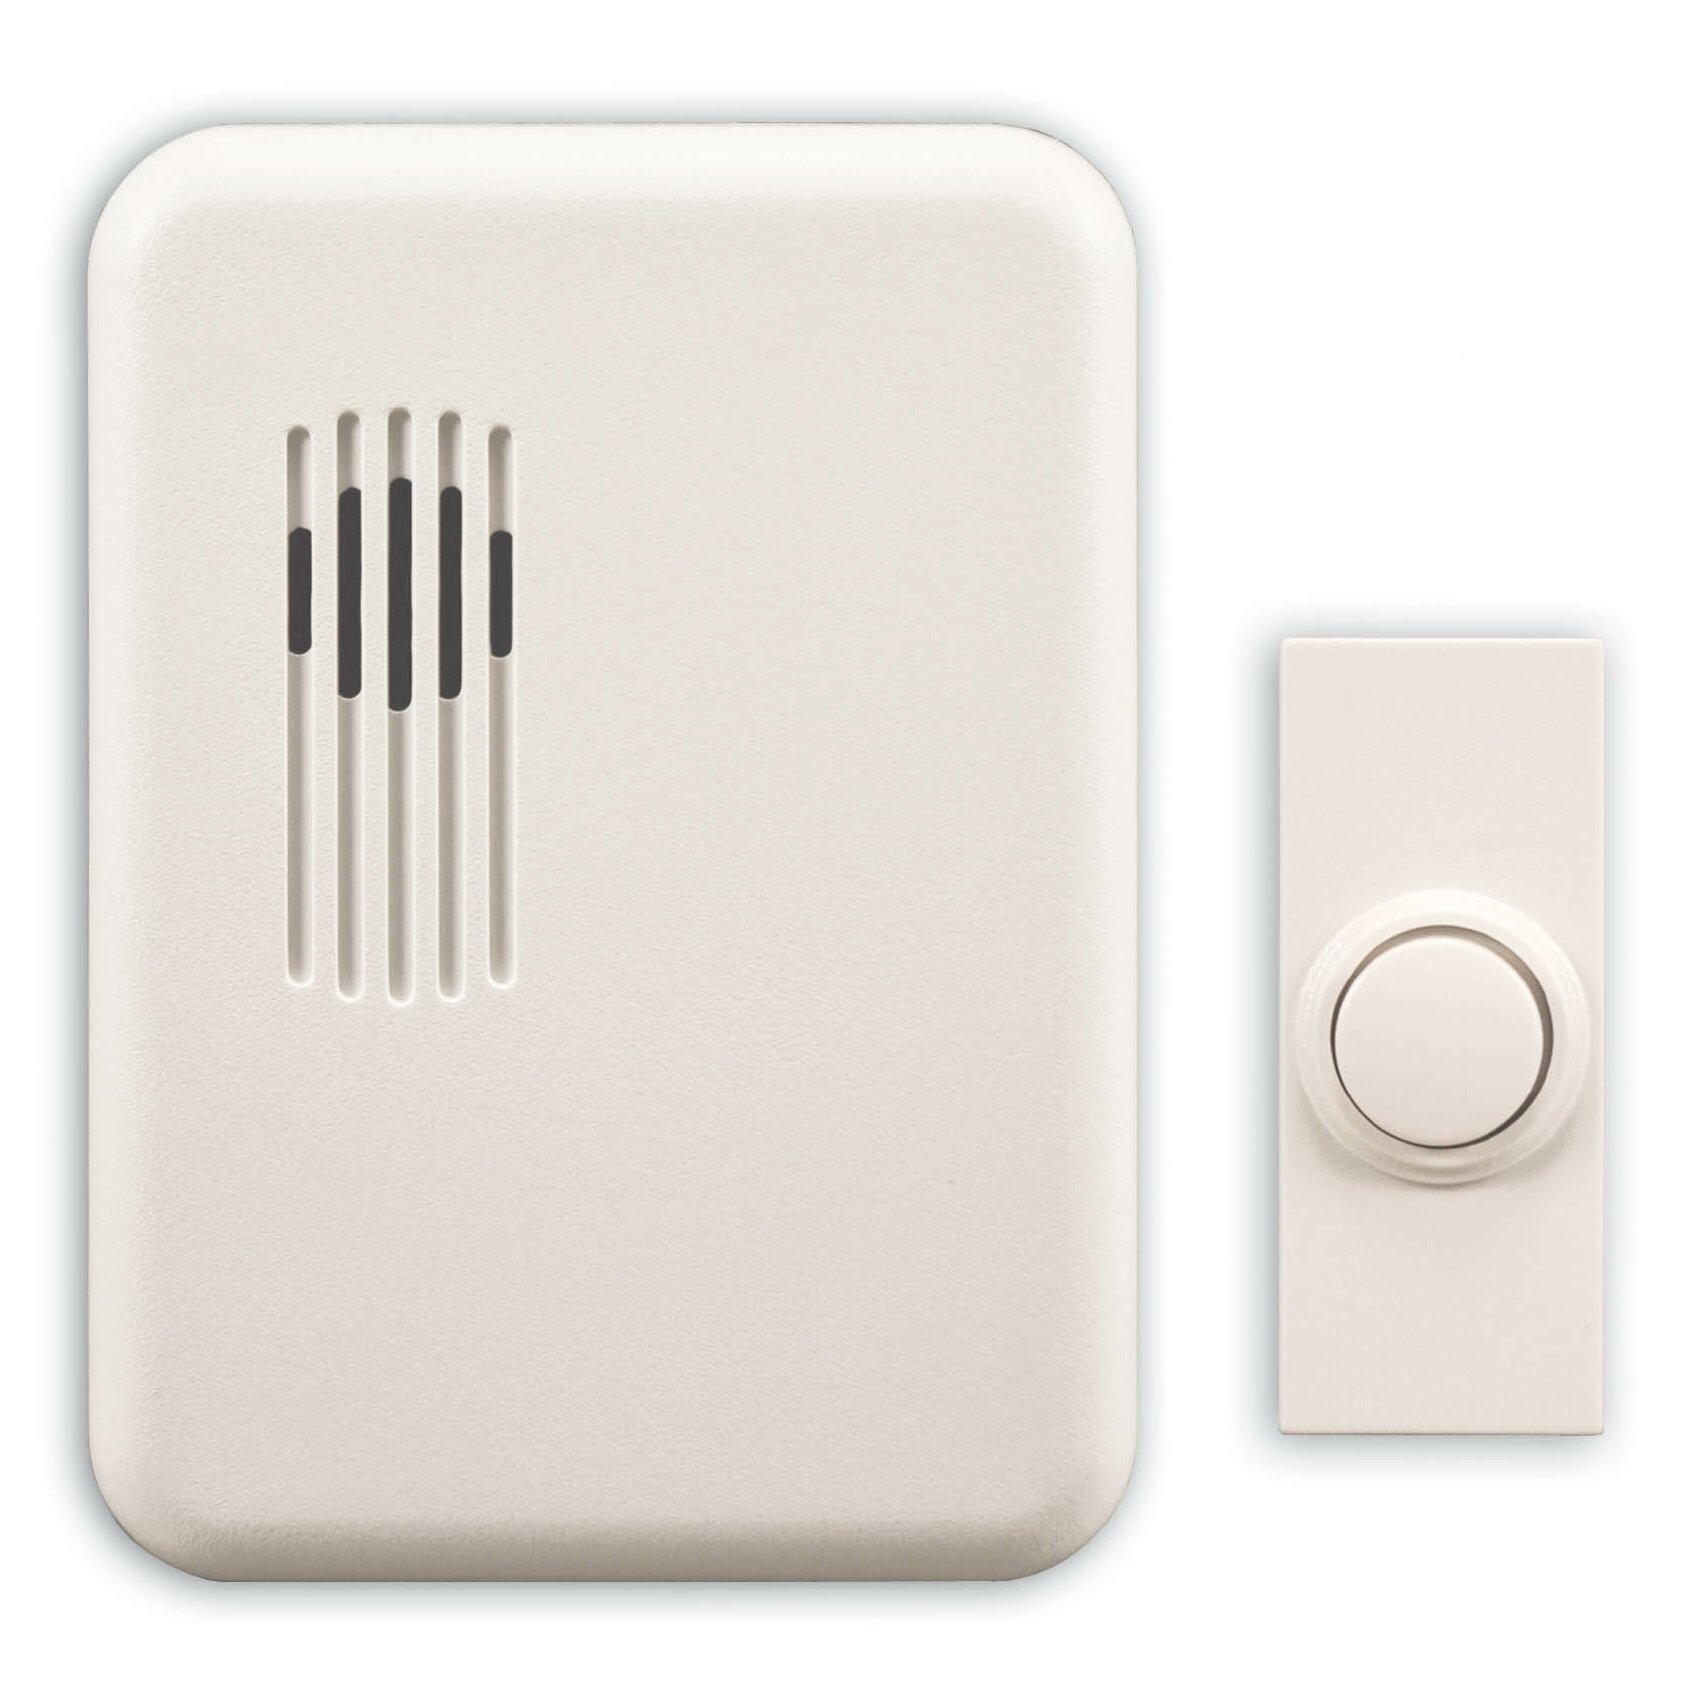 Heath zenith wireless plug in door chime kit with one plug for 1 by one door chime